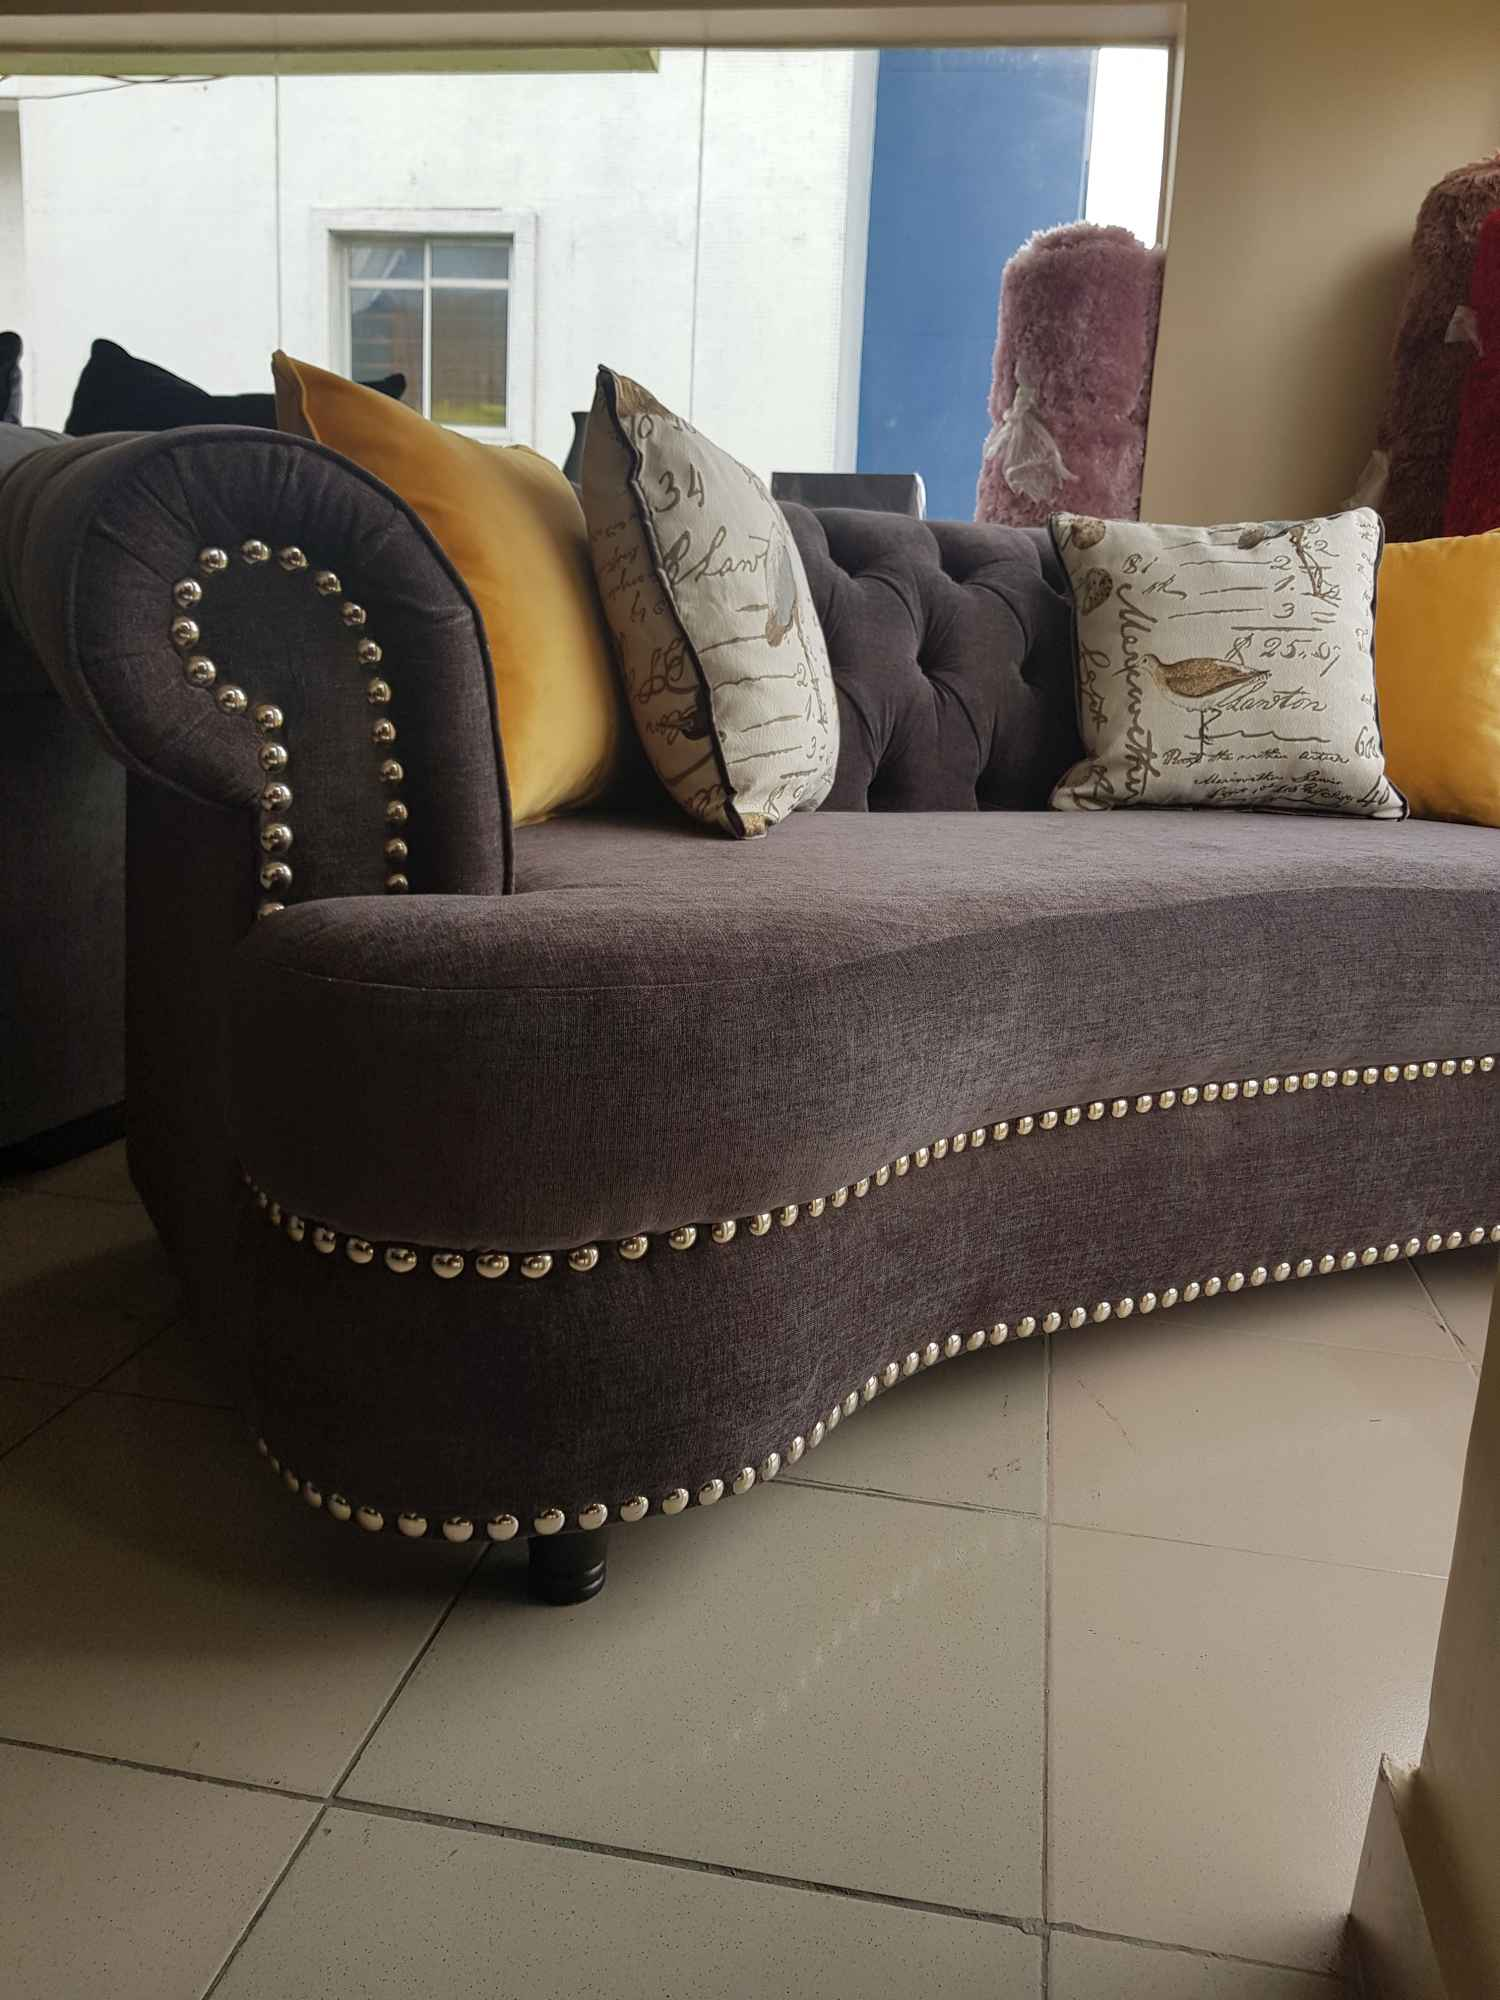 Stupendous Furniture Store Lagos Buy Furniture Online In Nigeria Pabps2019 Chair Design Images Pabps2019Com